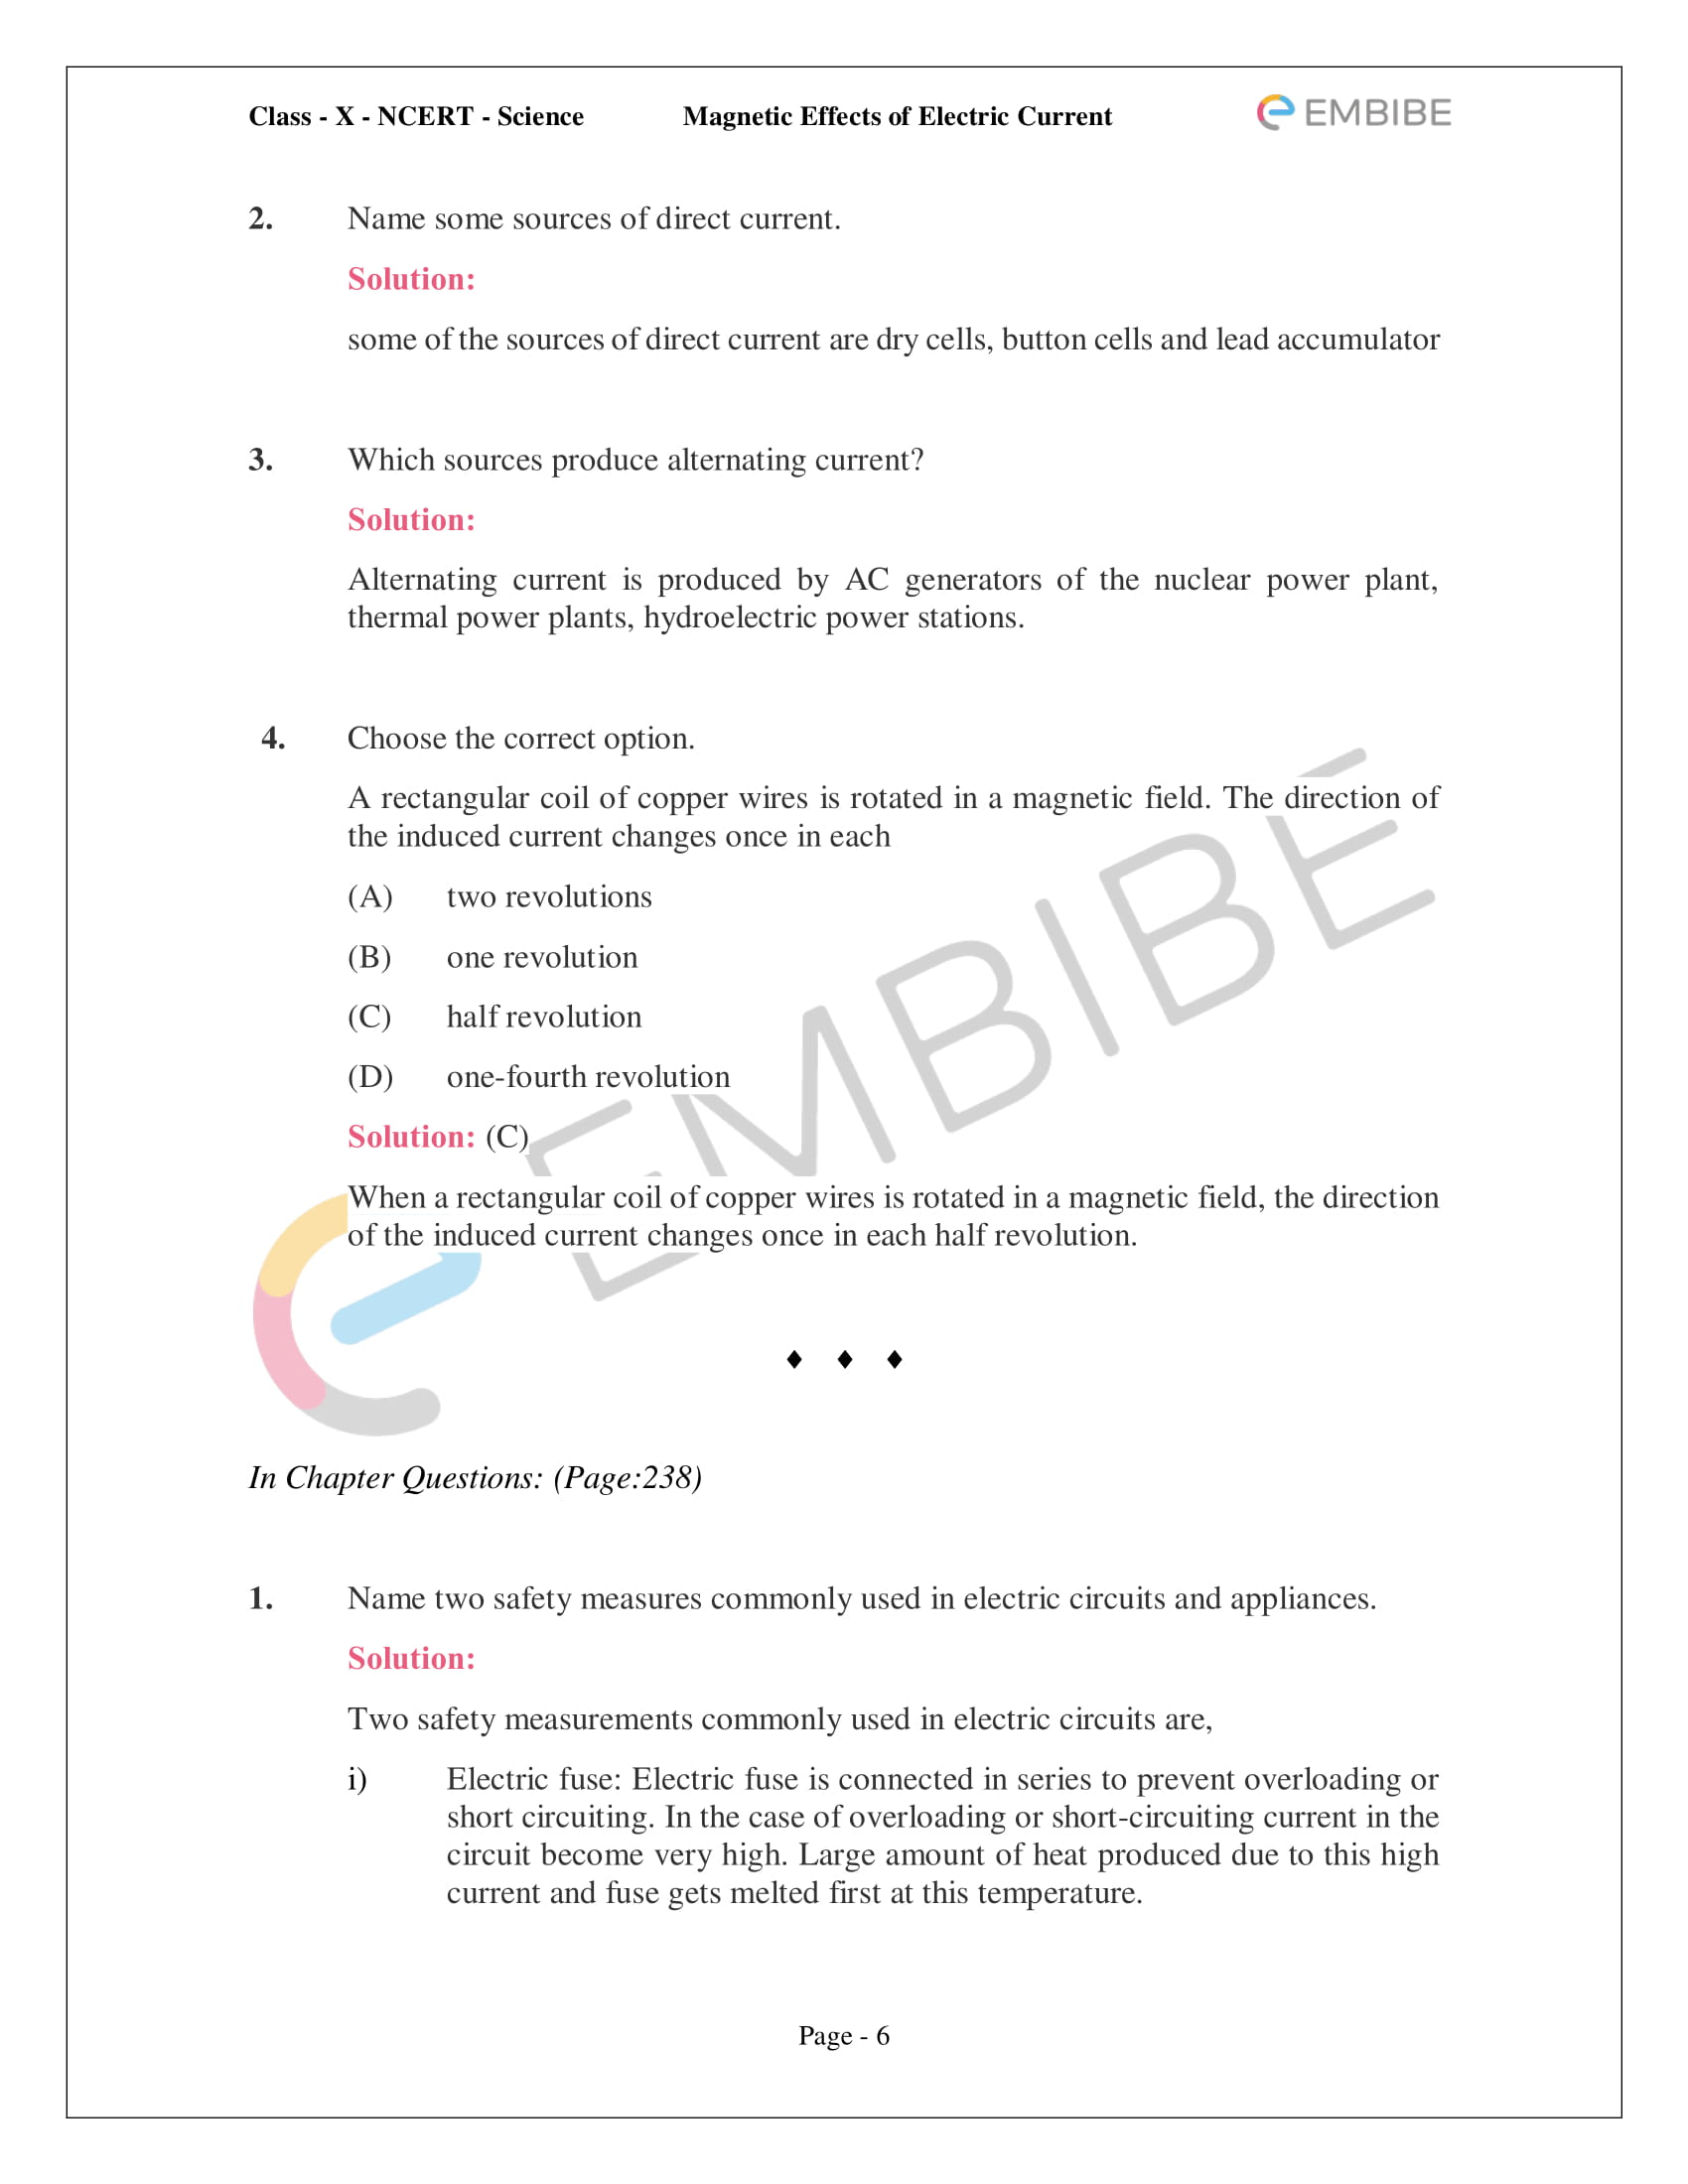 CBSE NCERT Solutions For Class 10 Science Chapter 13 - Magnetic Effects of Electric Current - 6